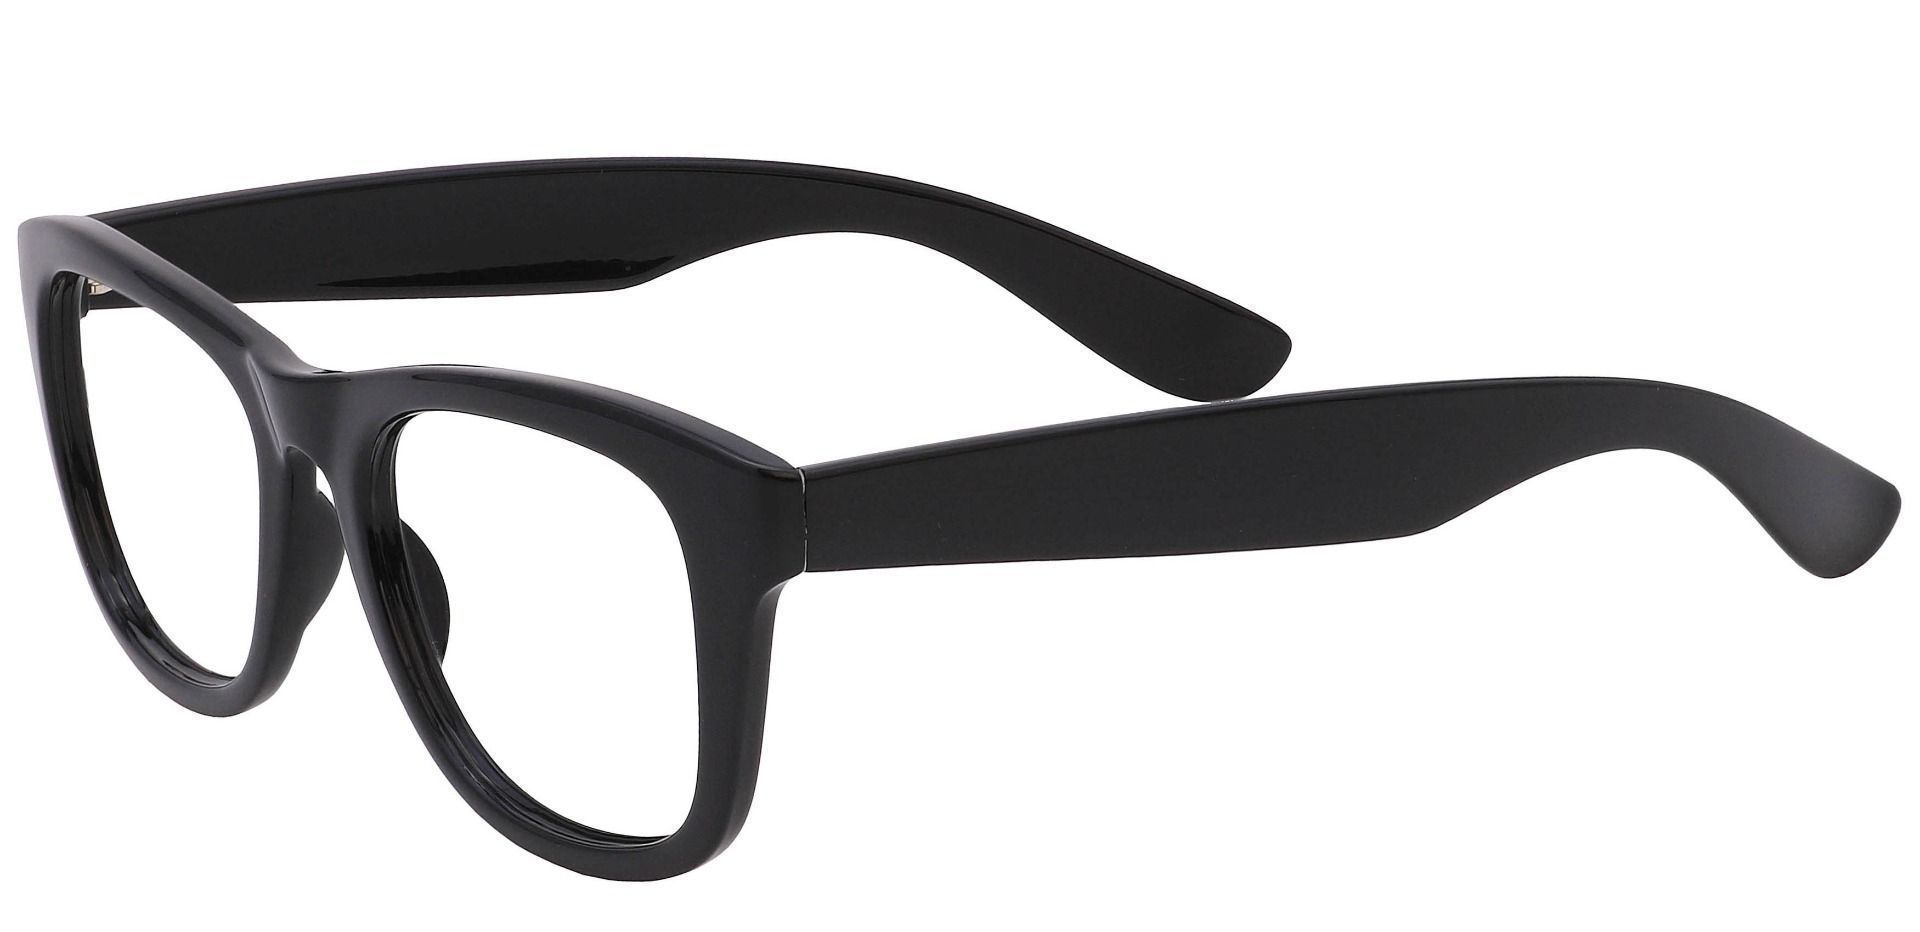 Tyre Square Eyeglasses Frame - Black